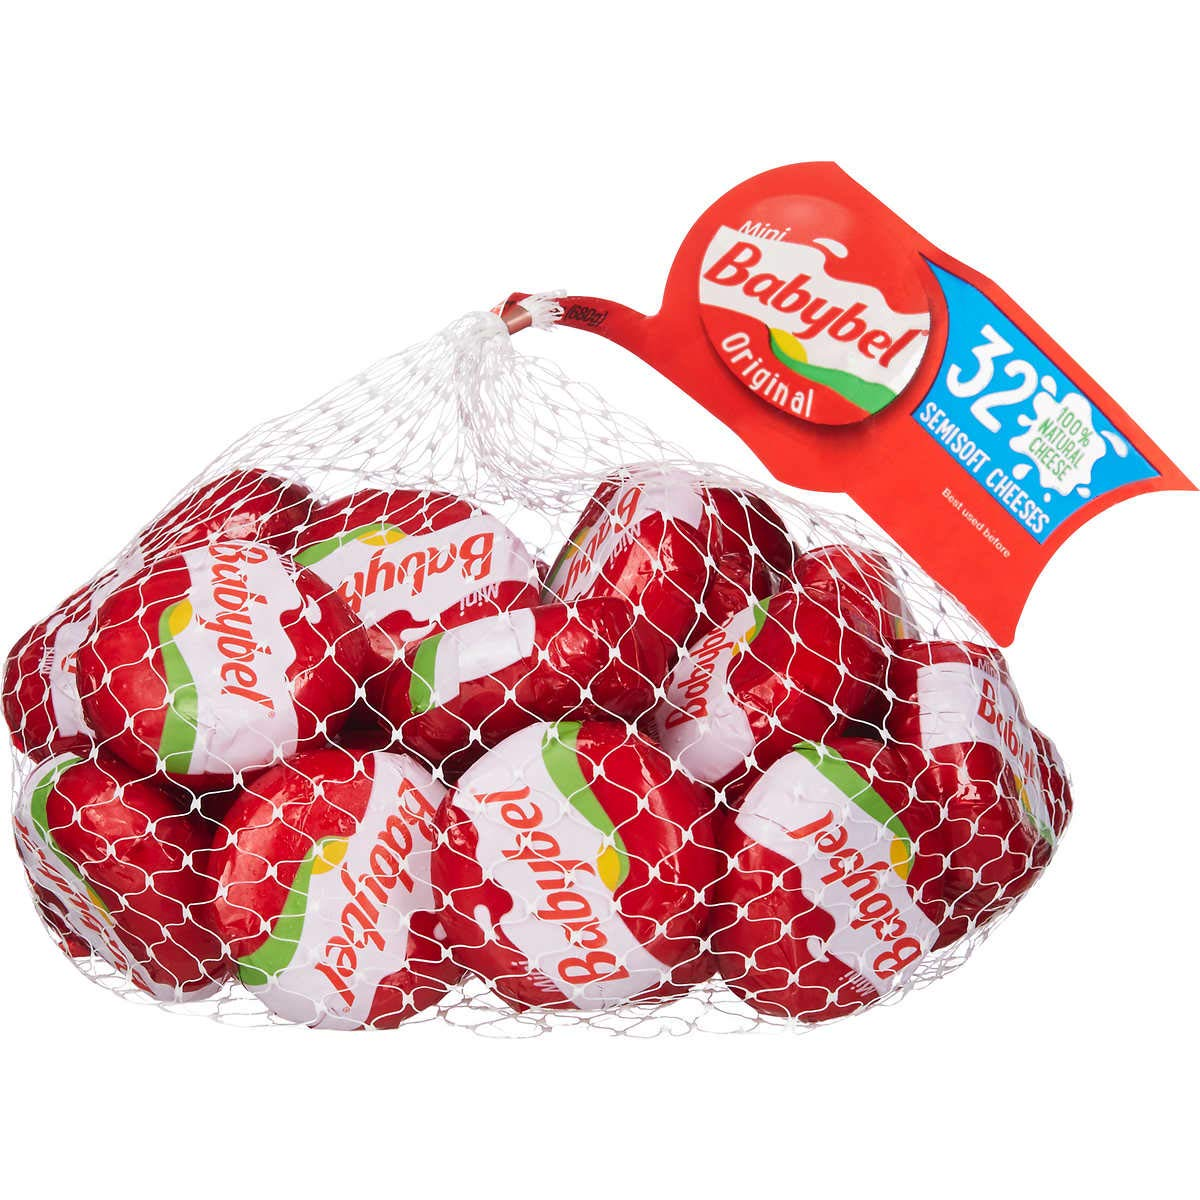 Babybel Mini Original Semisoft Cheeses, 32 count (1 Pack)